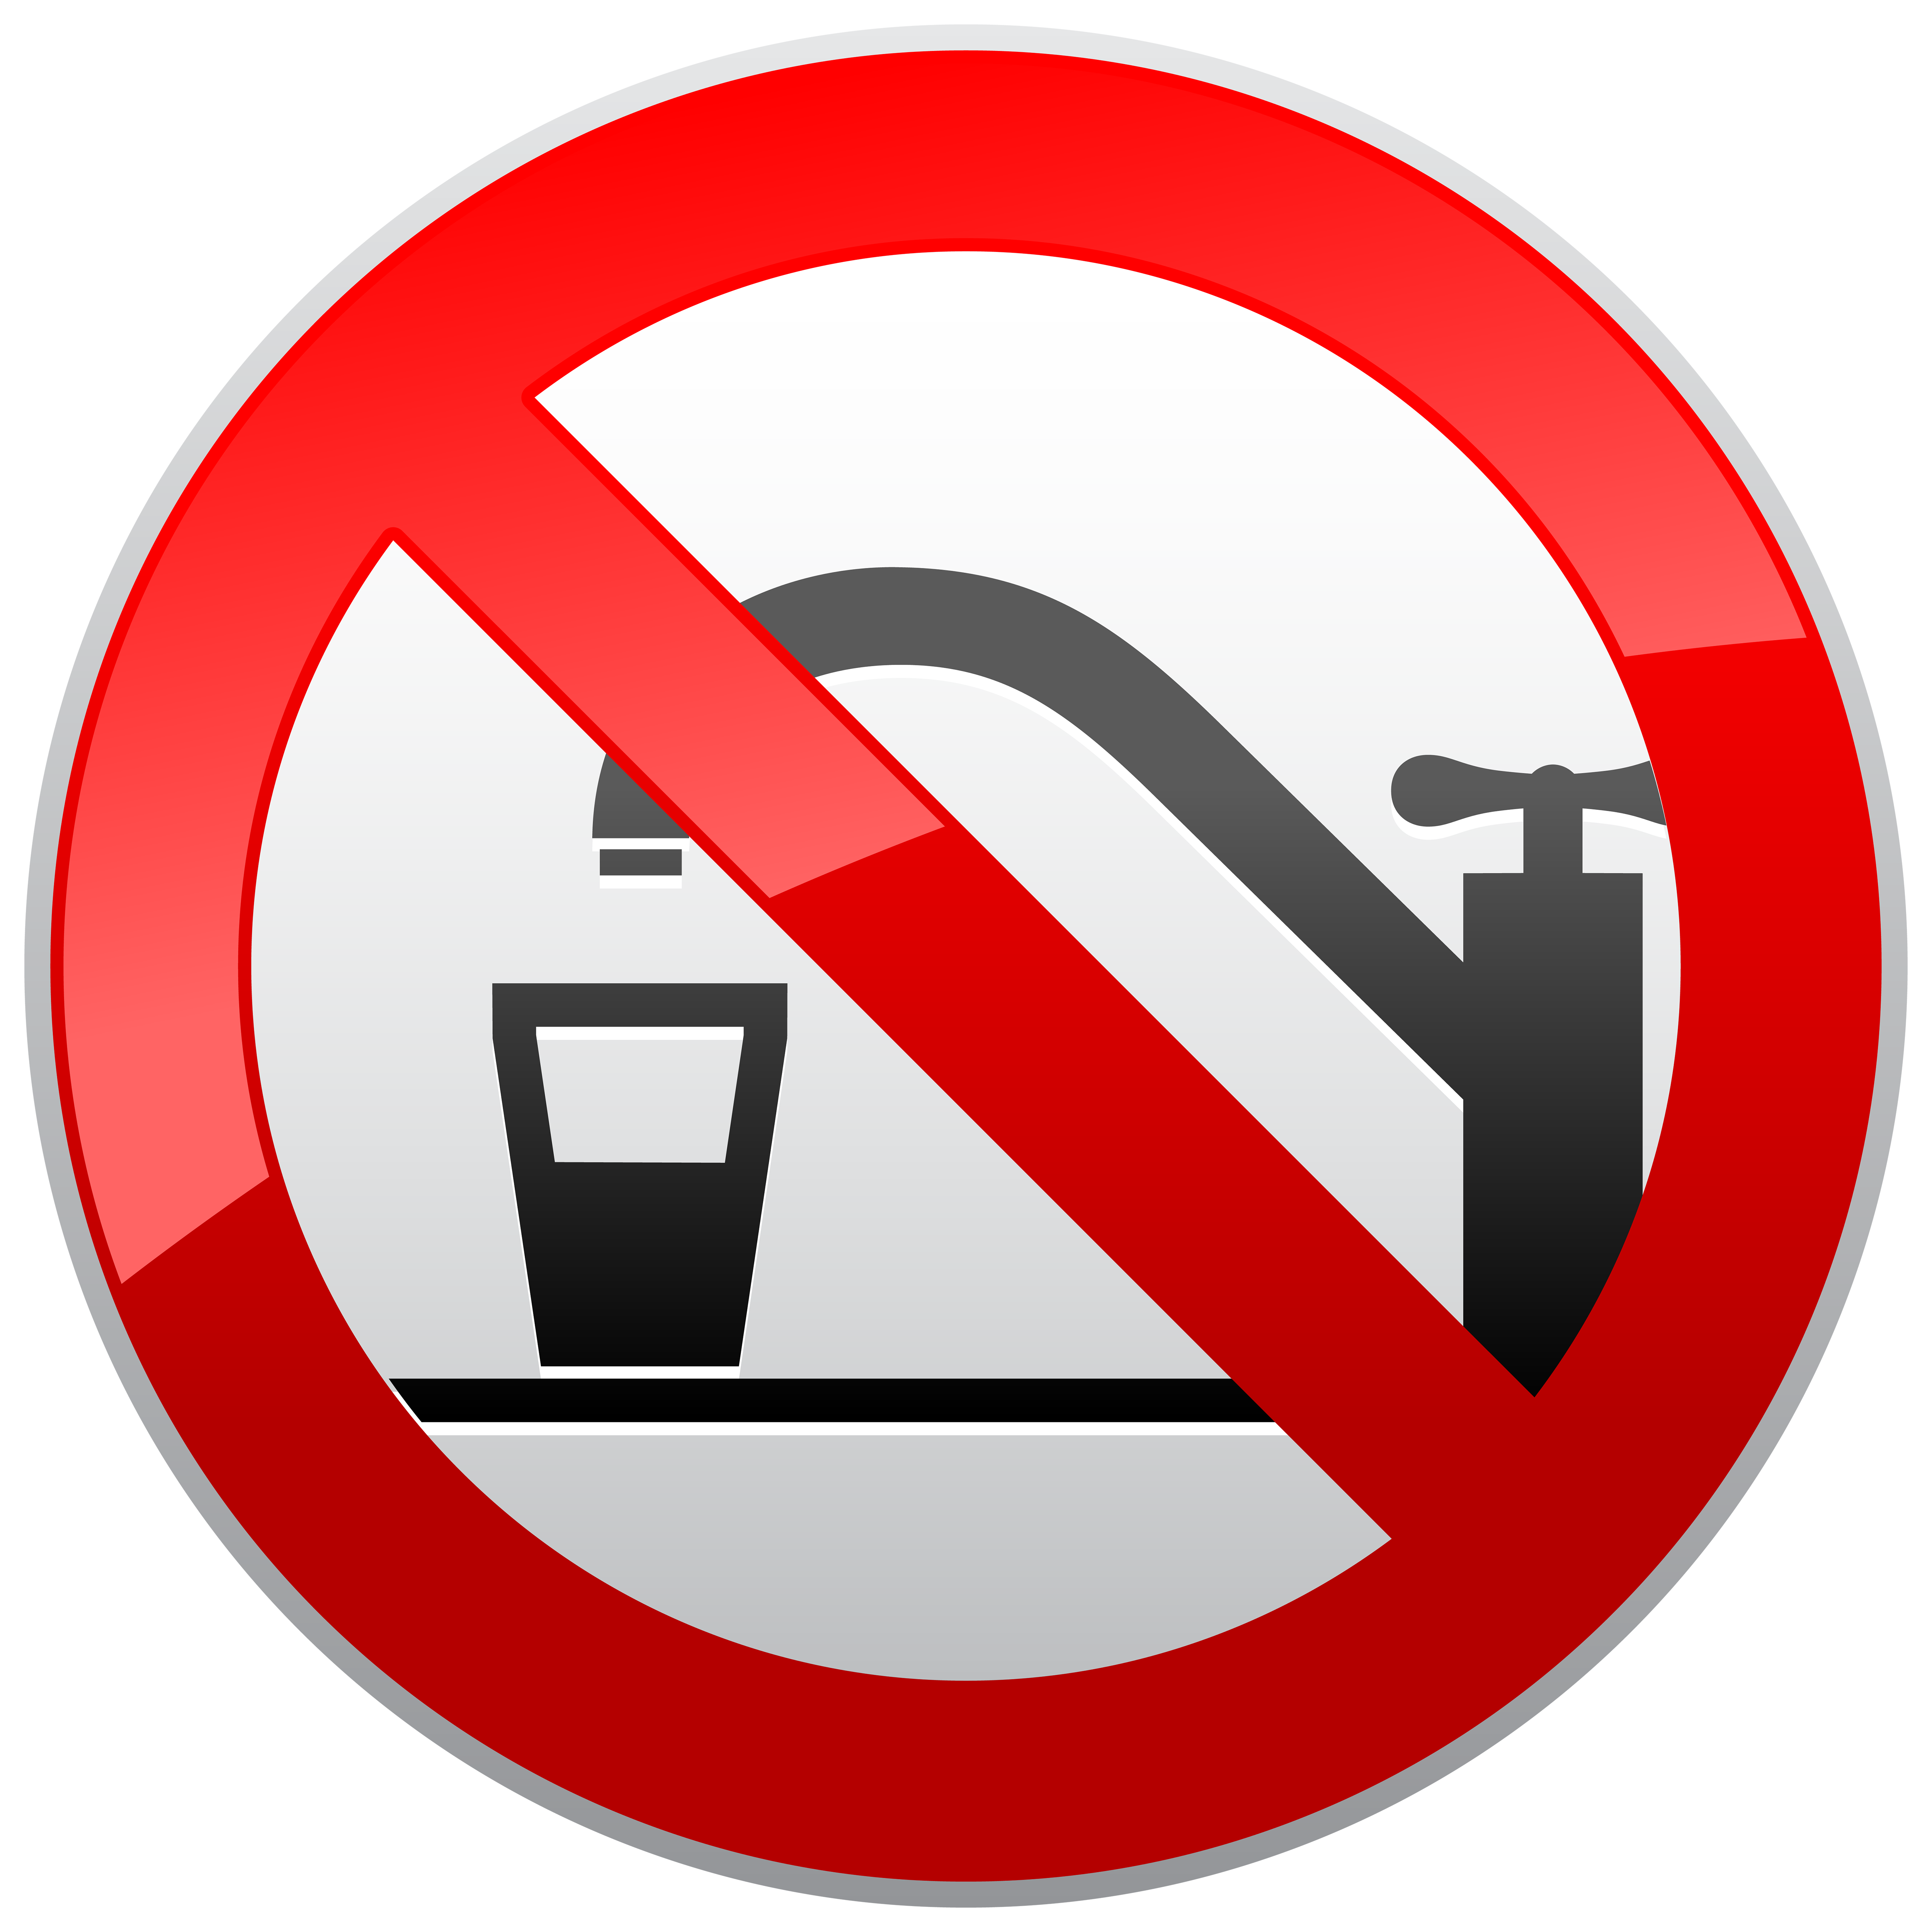 Water clipart bad clip royalty free library Free No Water Cliparts, Download Free Clip Art, Free Clip ... clip royalty free library